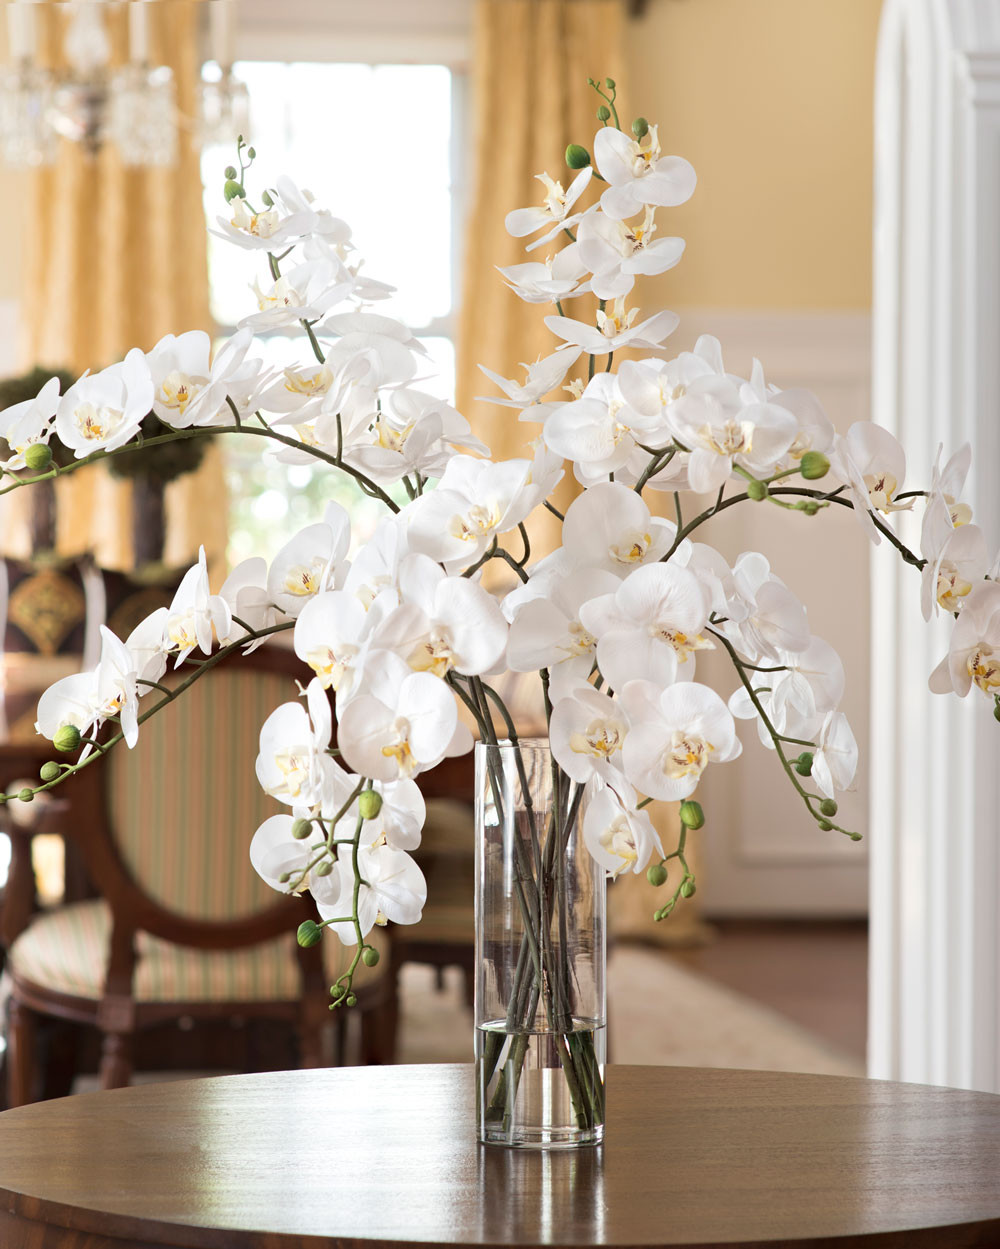 15 attractive Big Vase Floral Arrangements